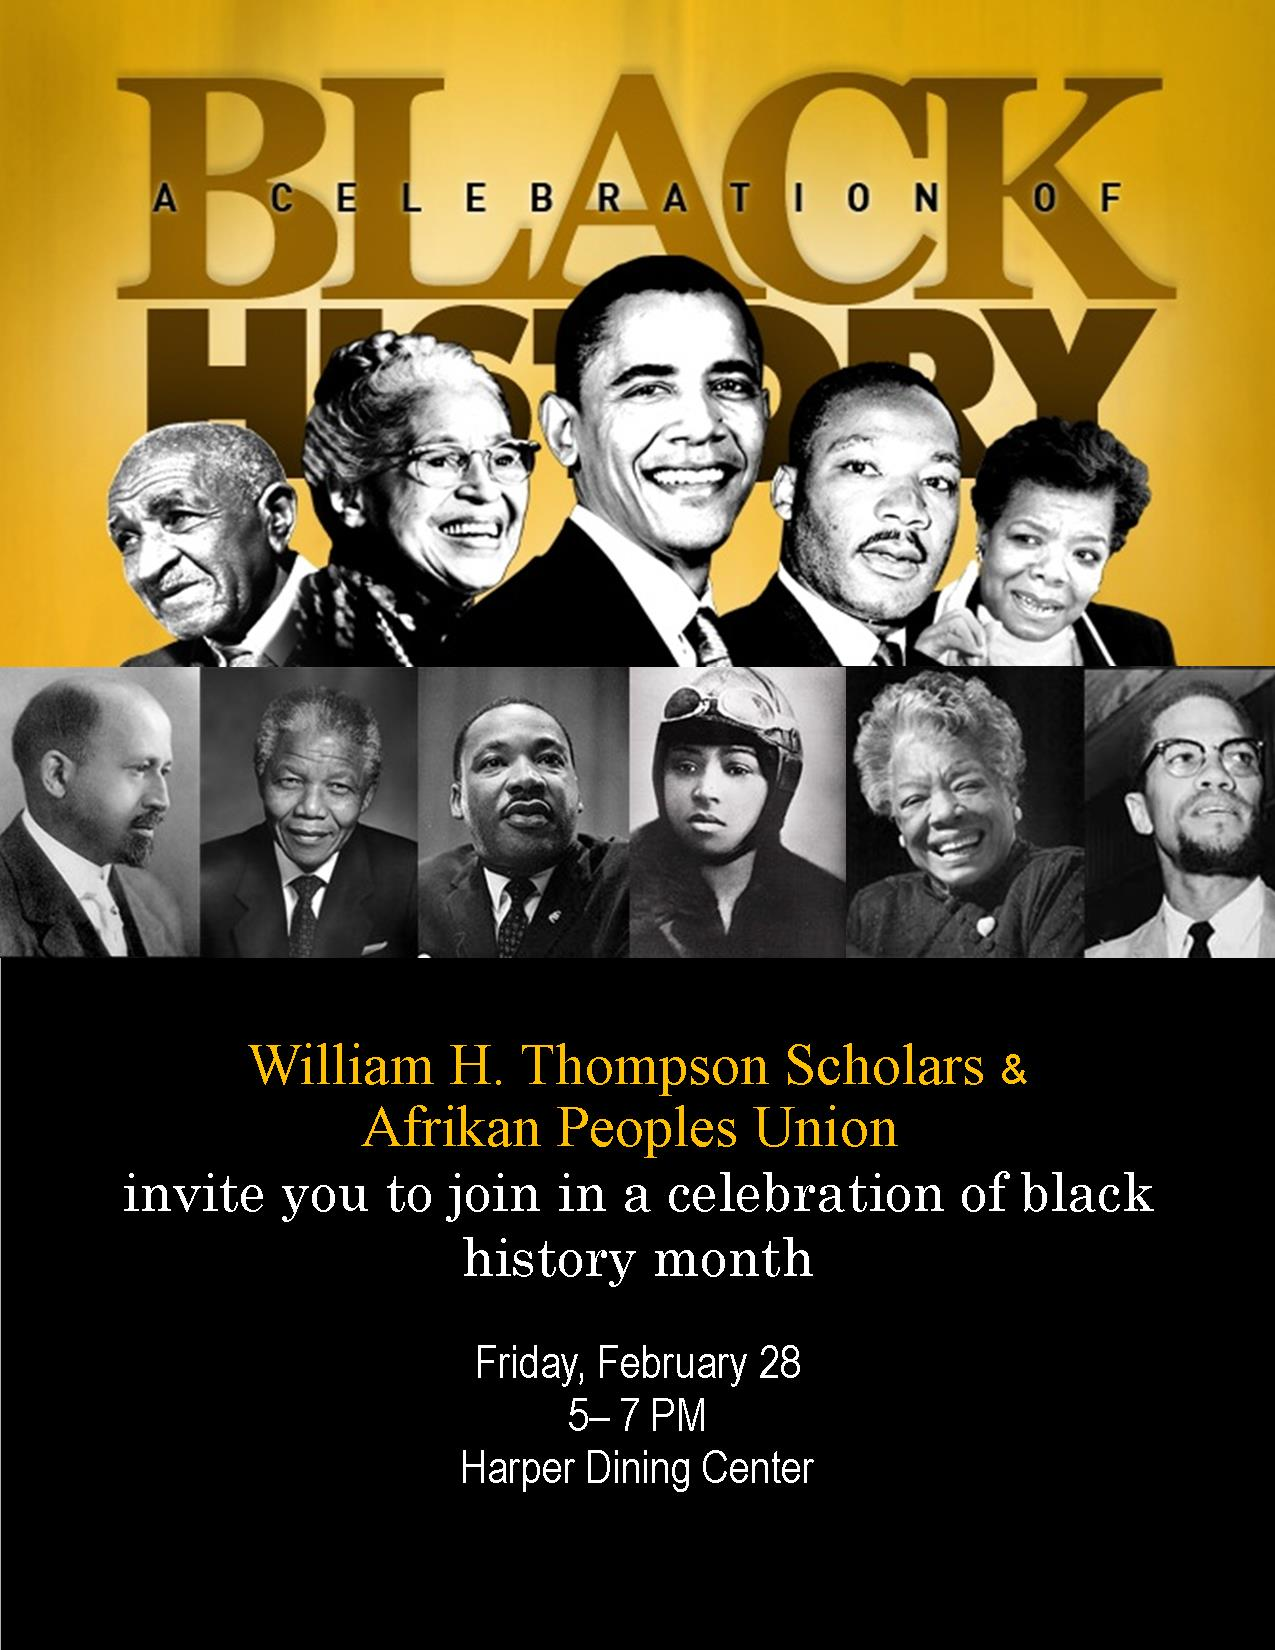 Black History Month Celebration Is Feb 28